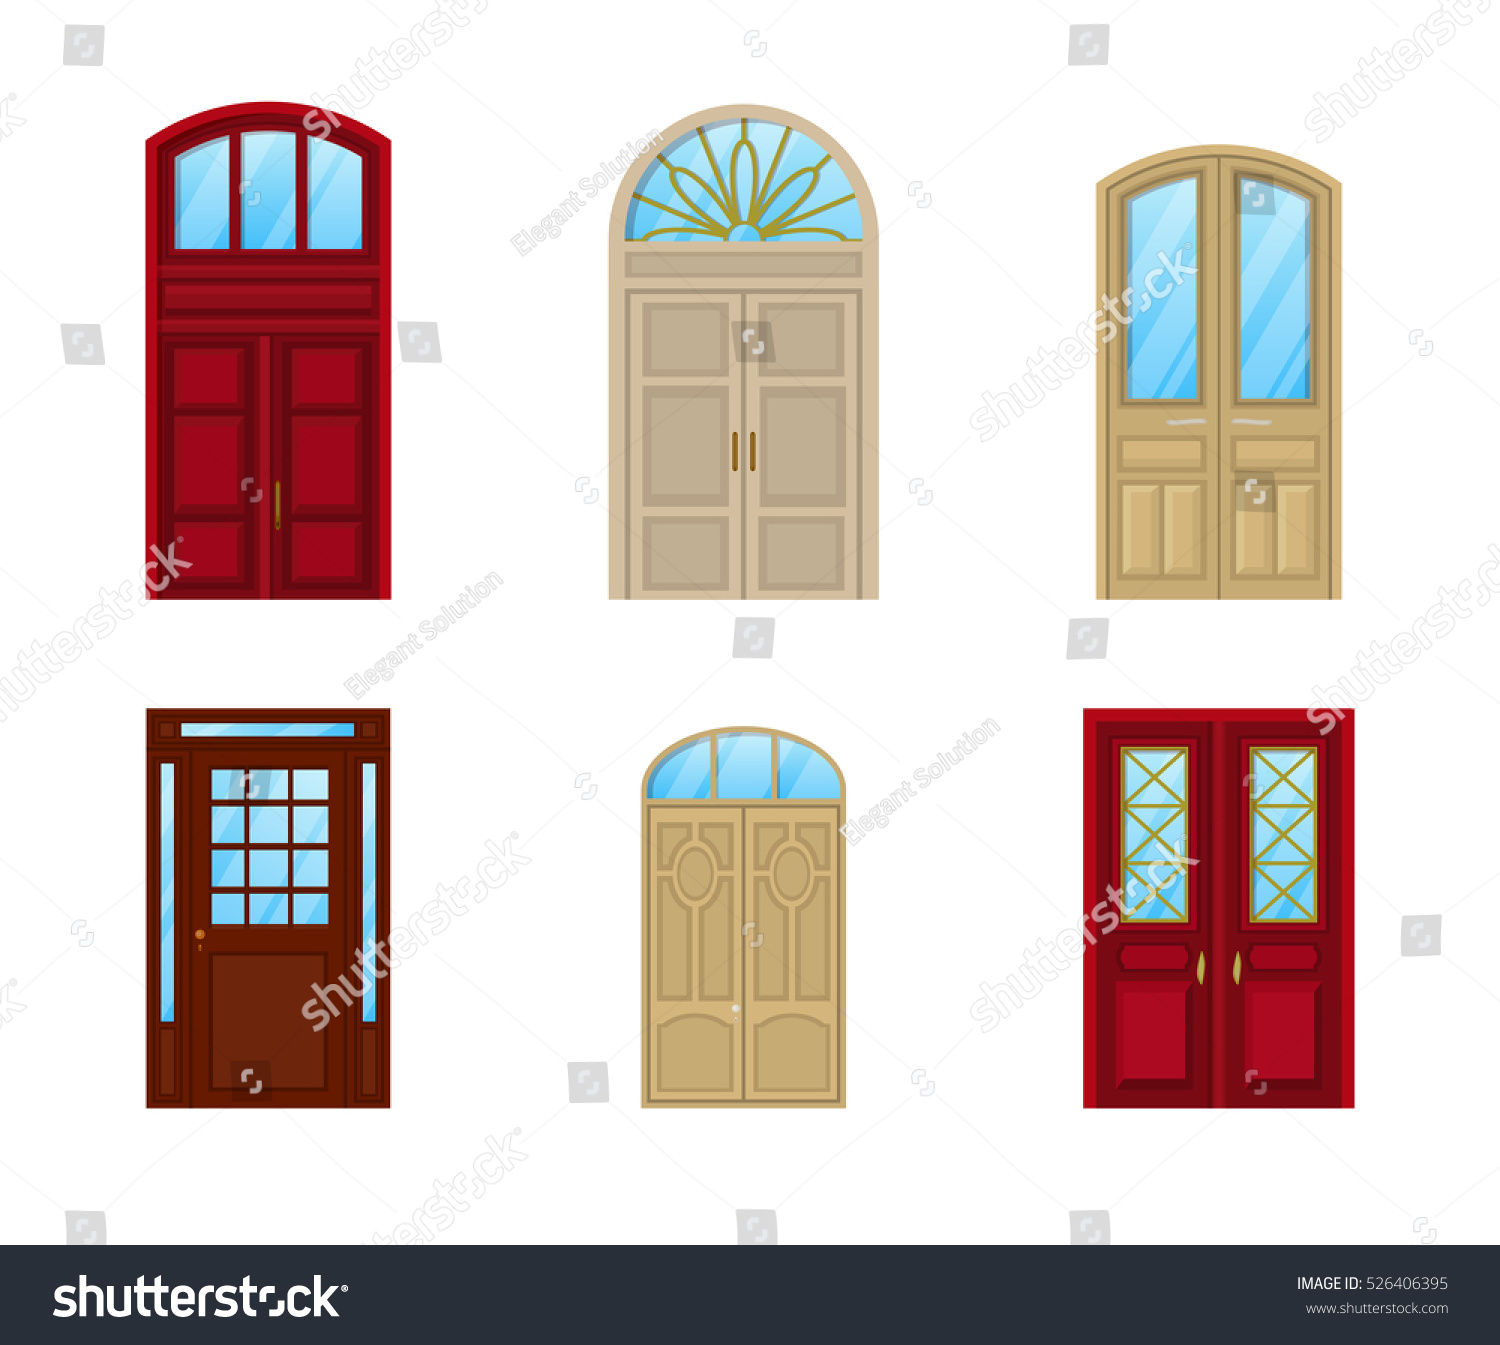 Room door set icons interior entrance stock vector for Room door frame